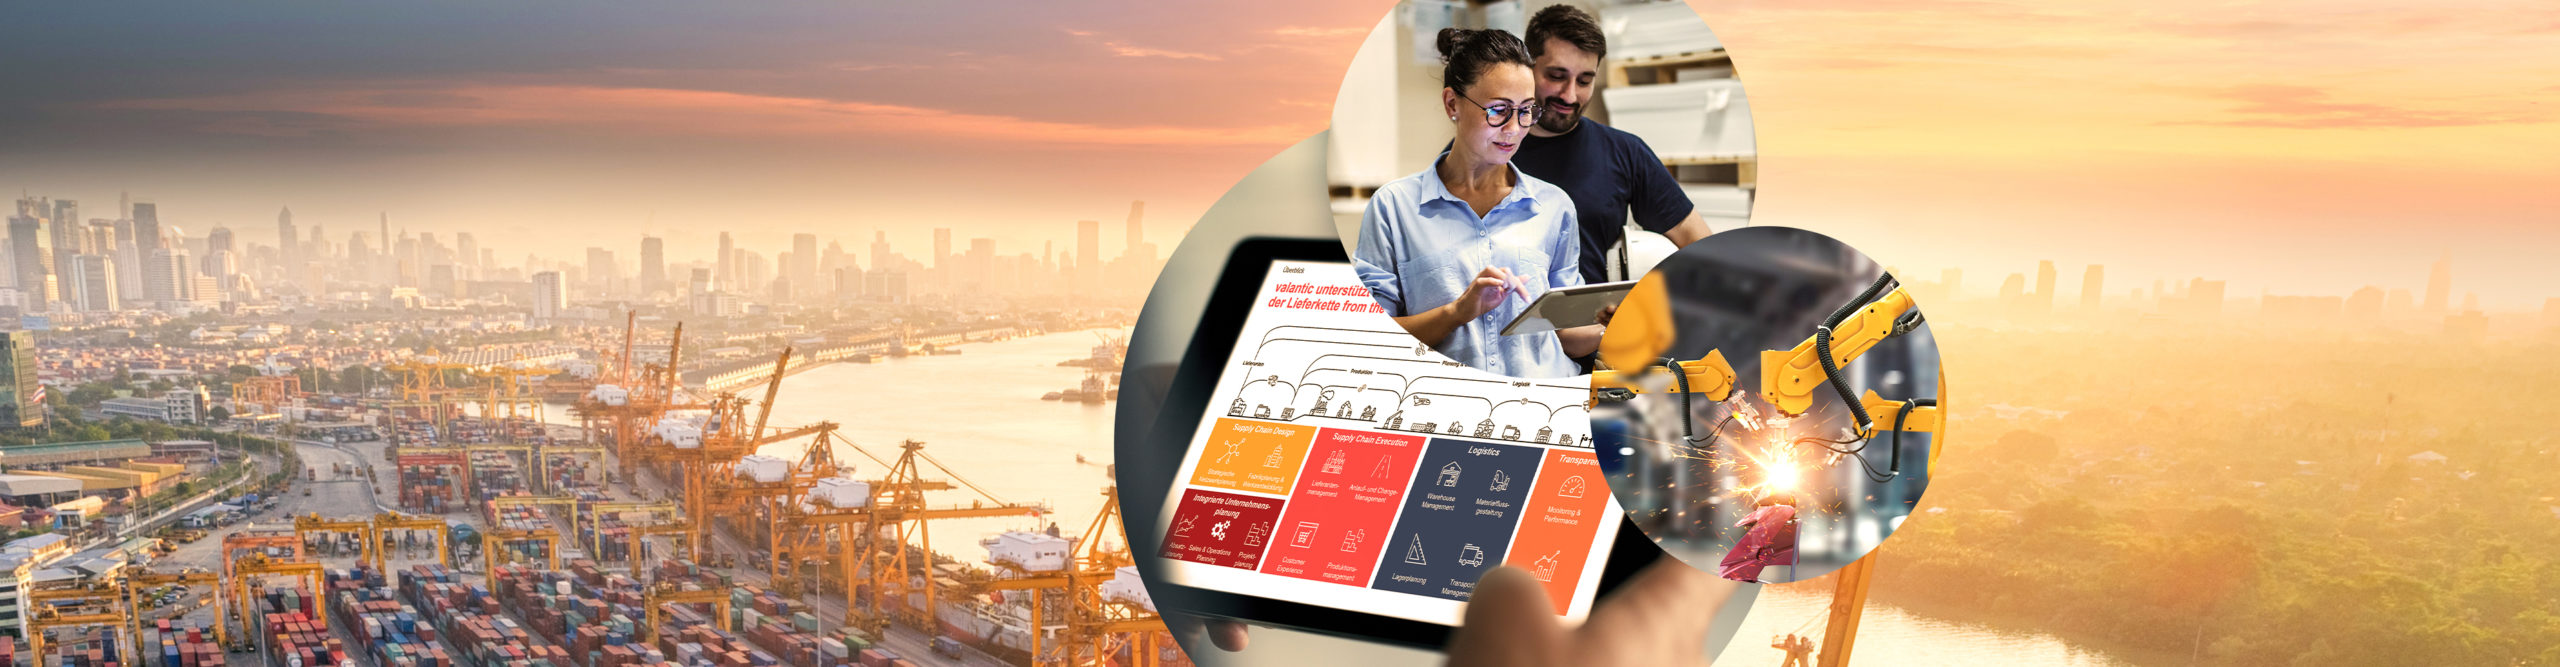 Learn more about SAP TM solutions for logistics service providers.